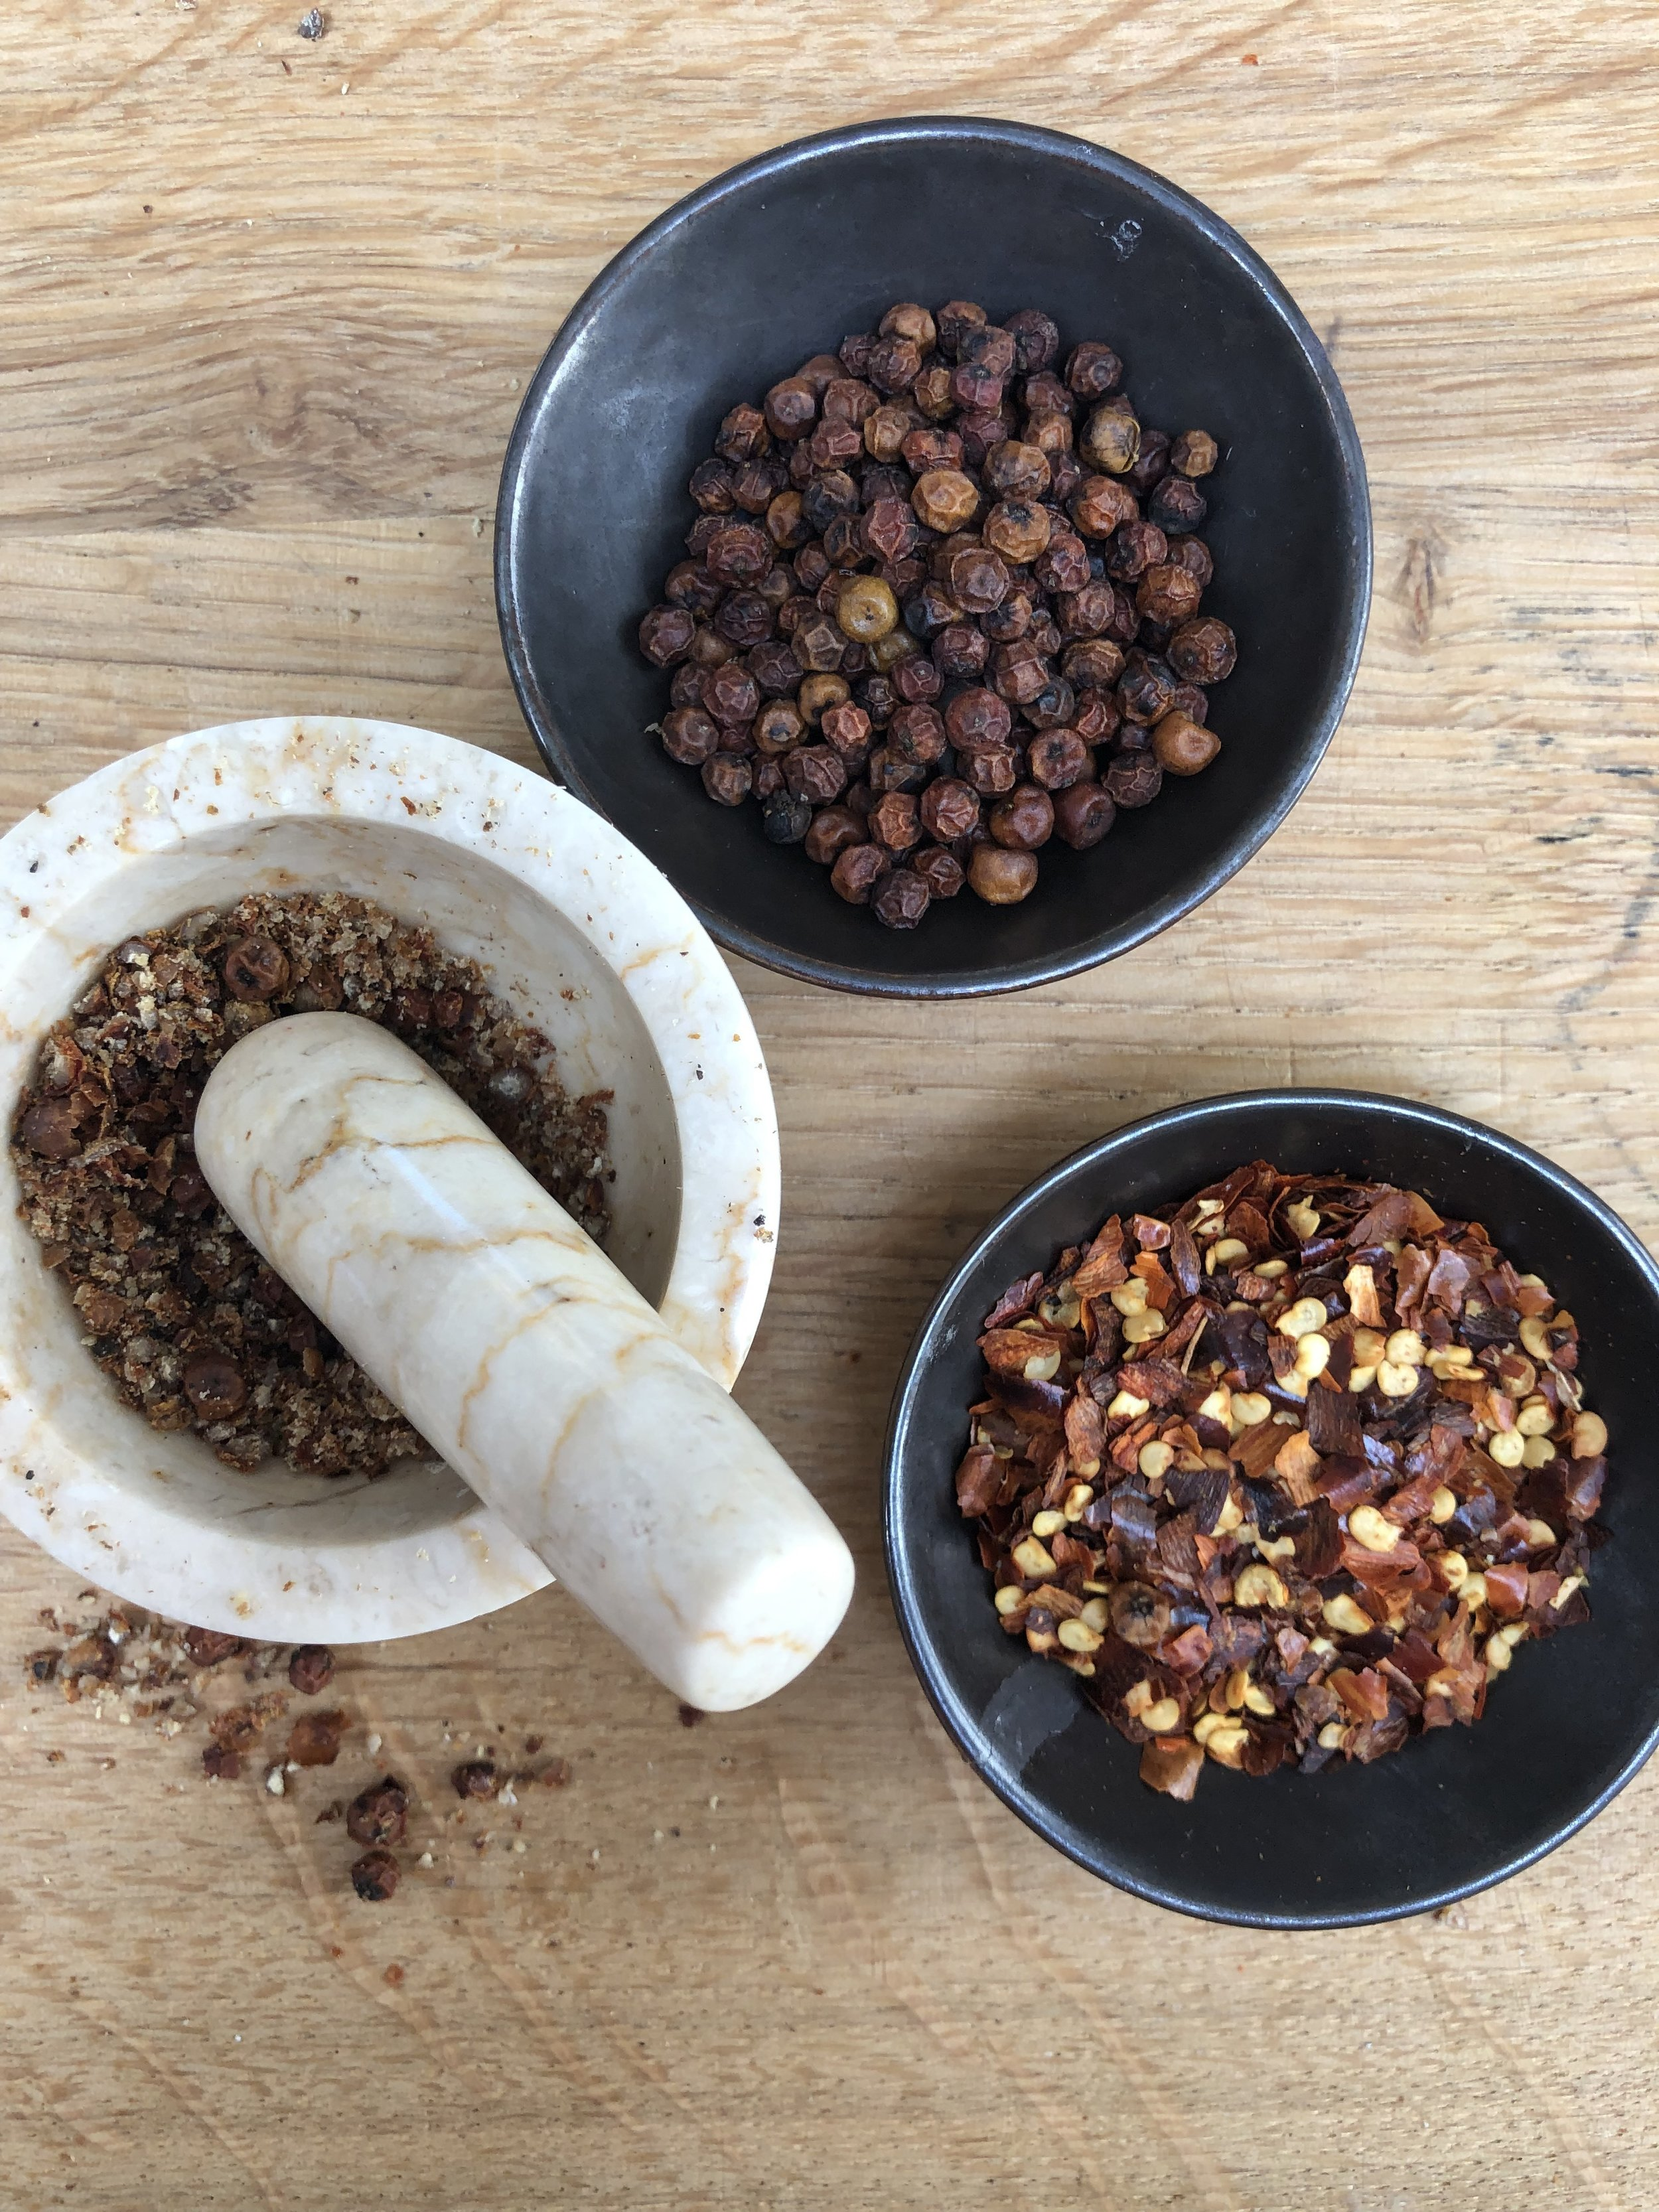 Red Kampot peppercorns and dried chilli flakes